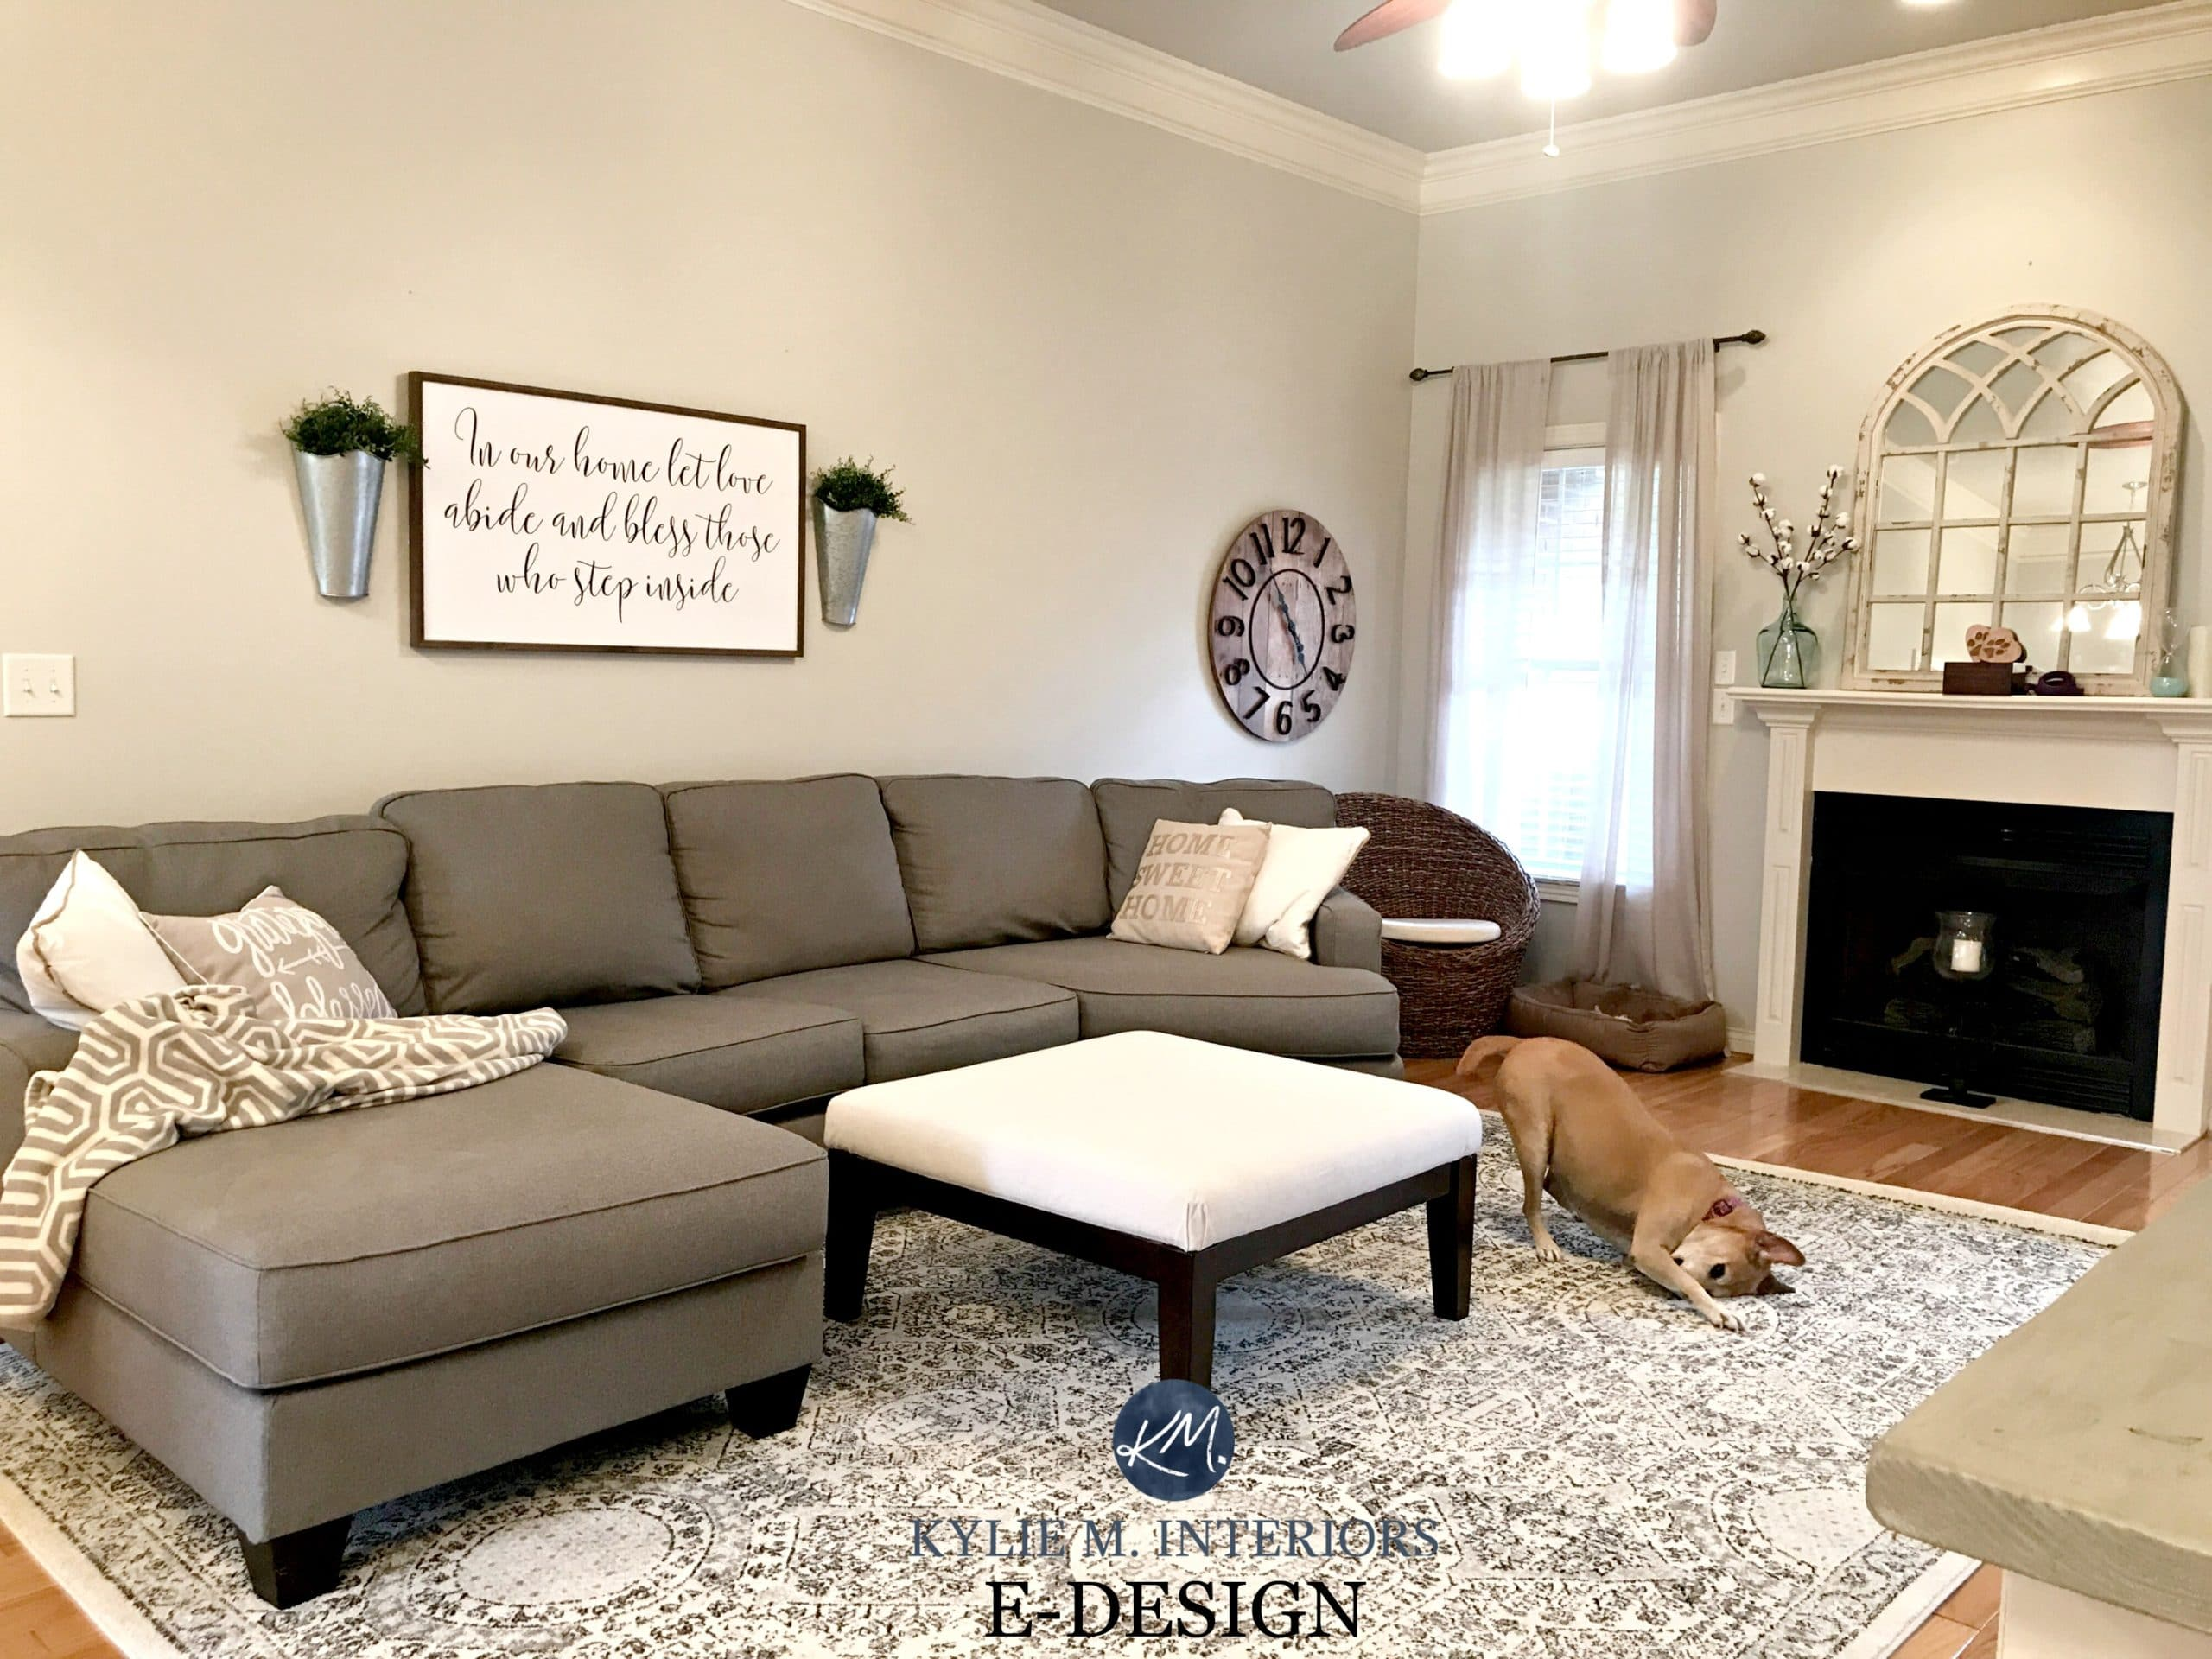 Sherwin Williams Agreeable Gray In Living Room With Gray Sectional Couch Area Rug Fireplace Mirror Kylie M E Design And Online Color Consulting